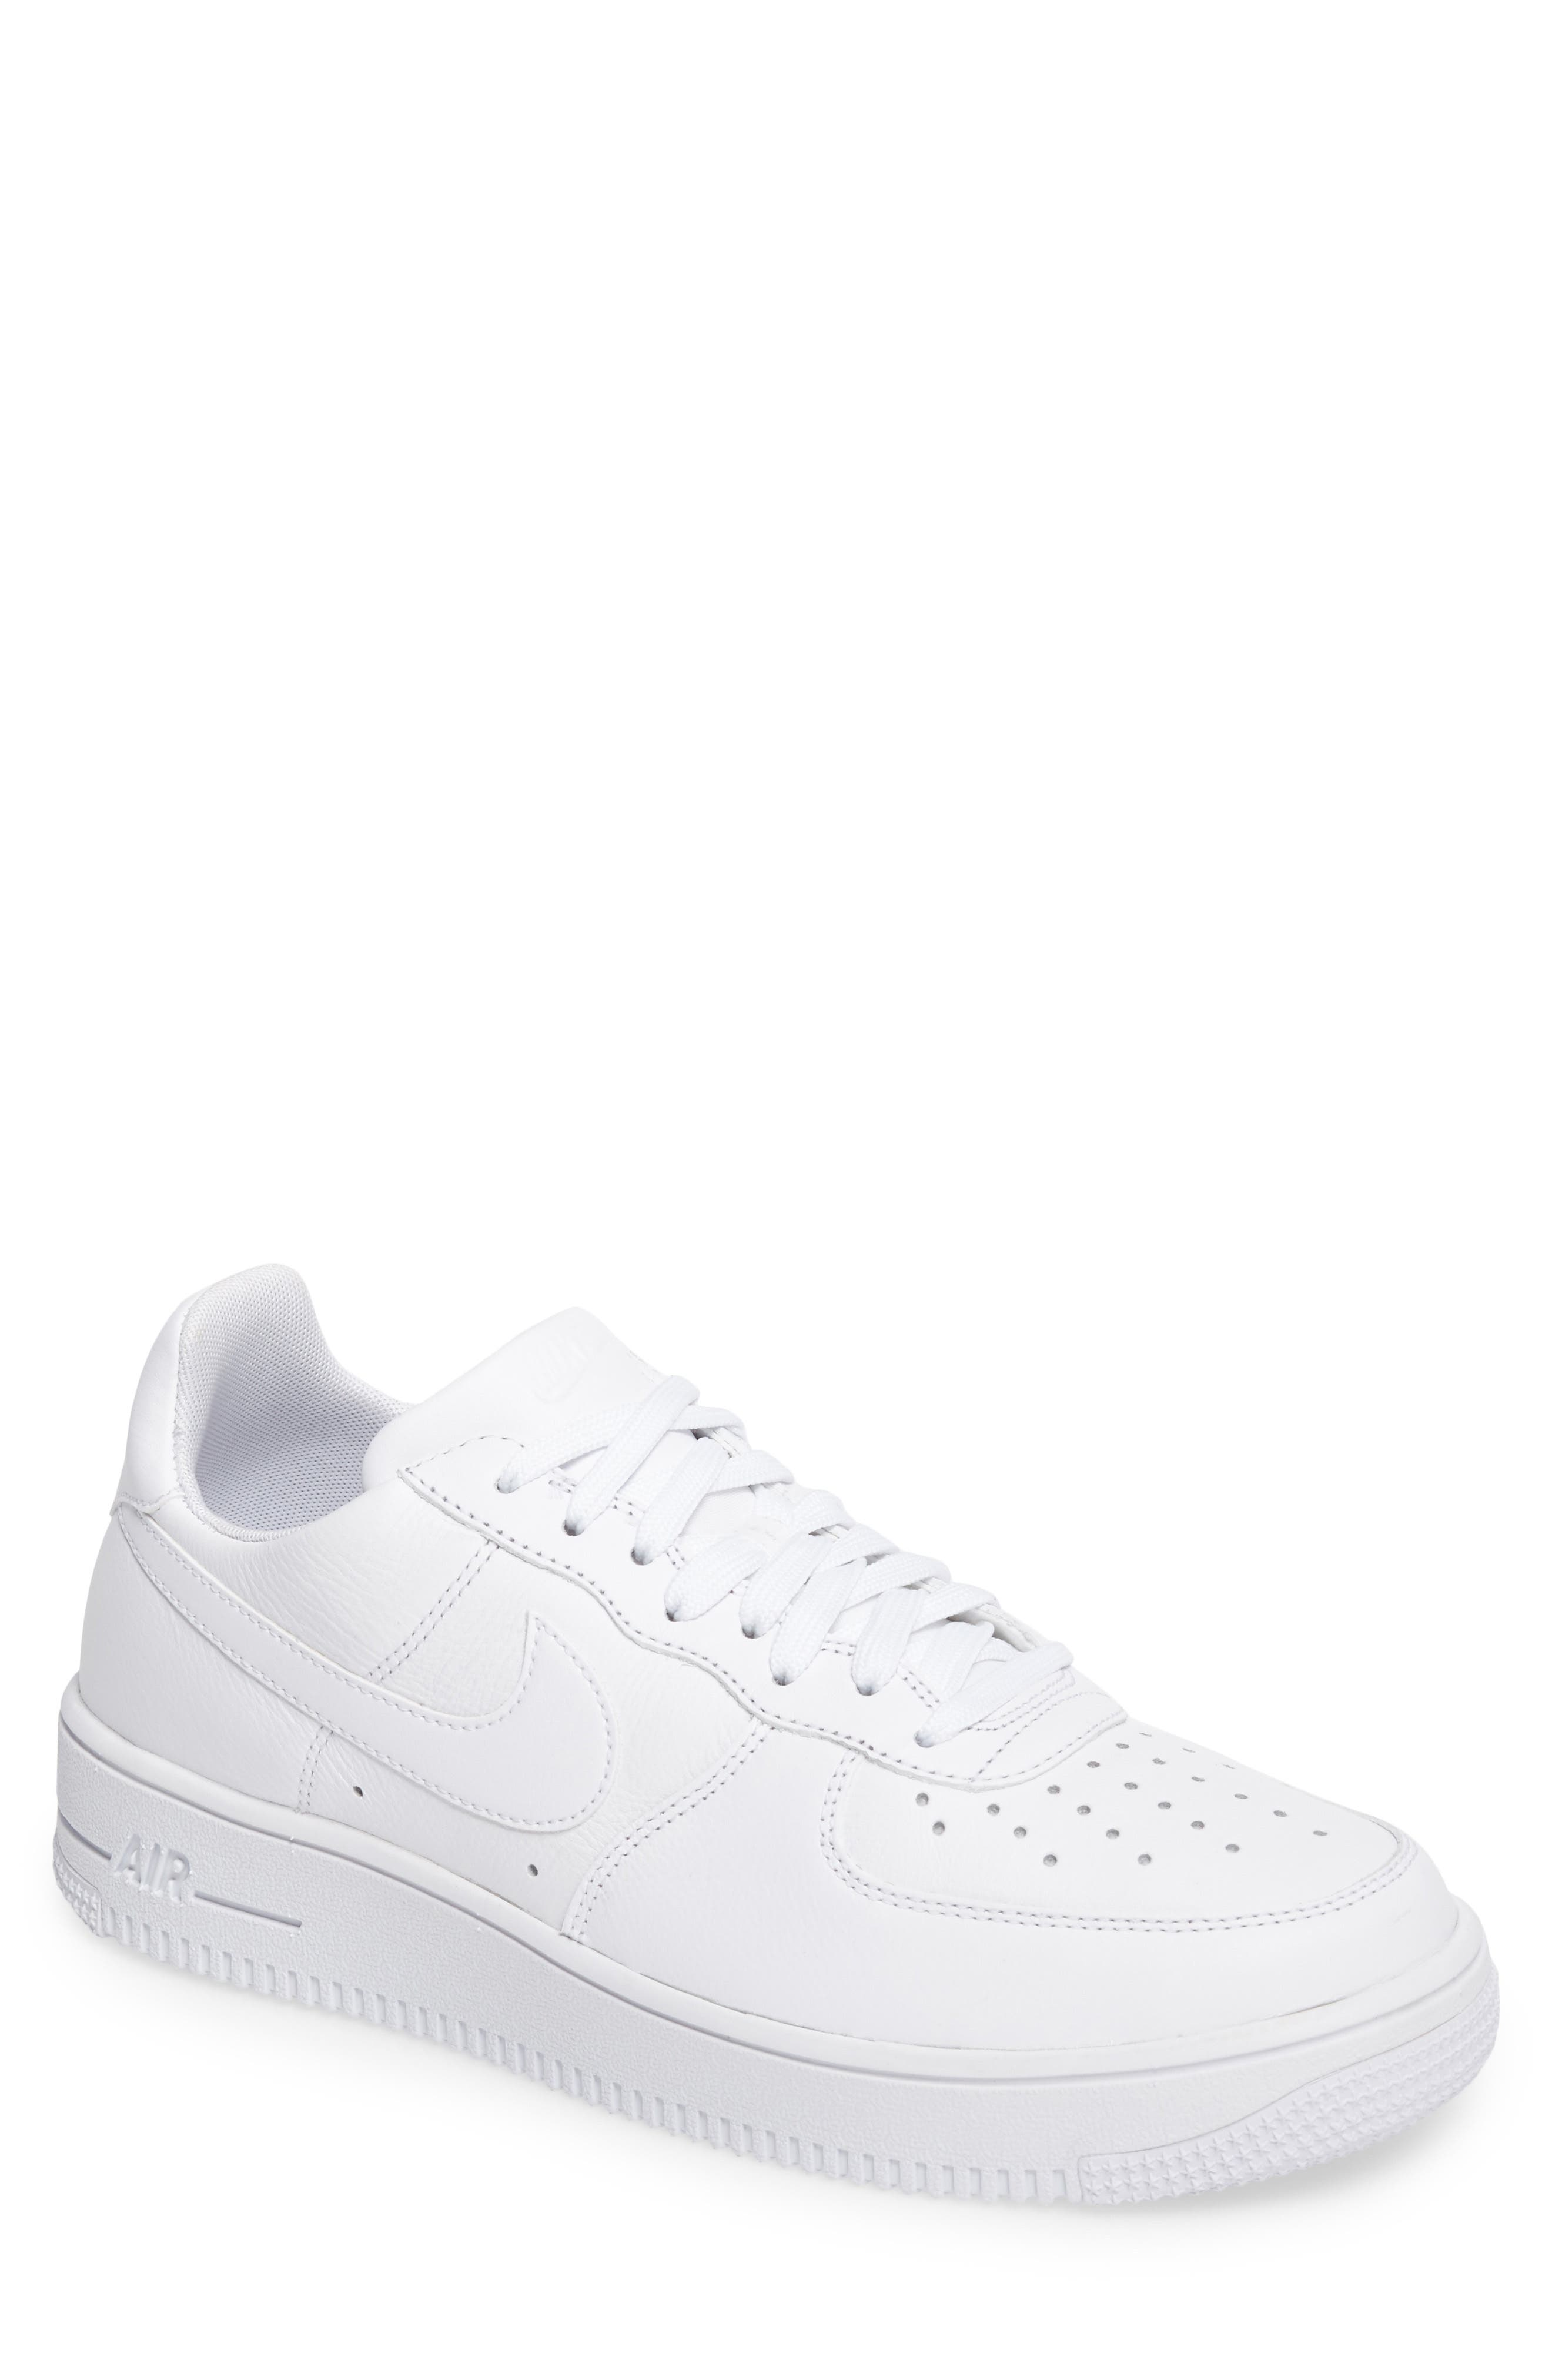 Nike Air Force 1 Ultraforce Sneaker (Men)